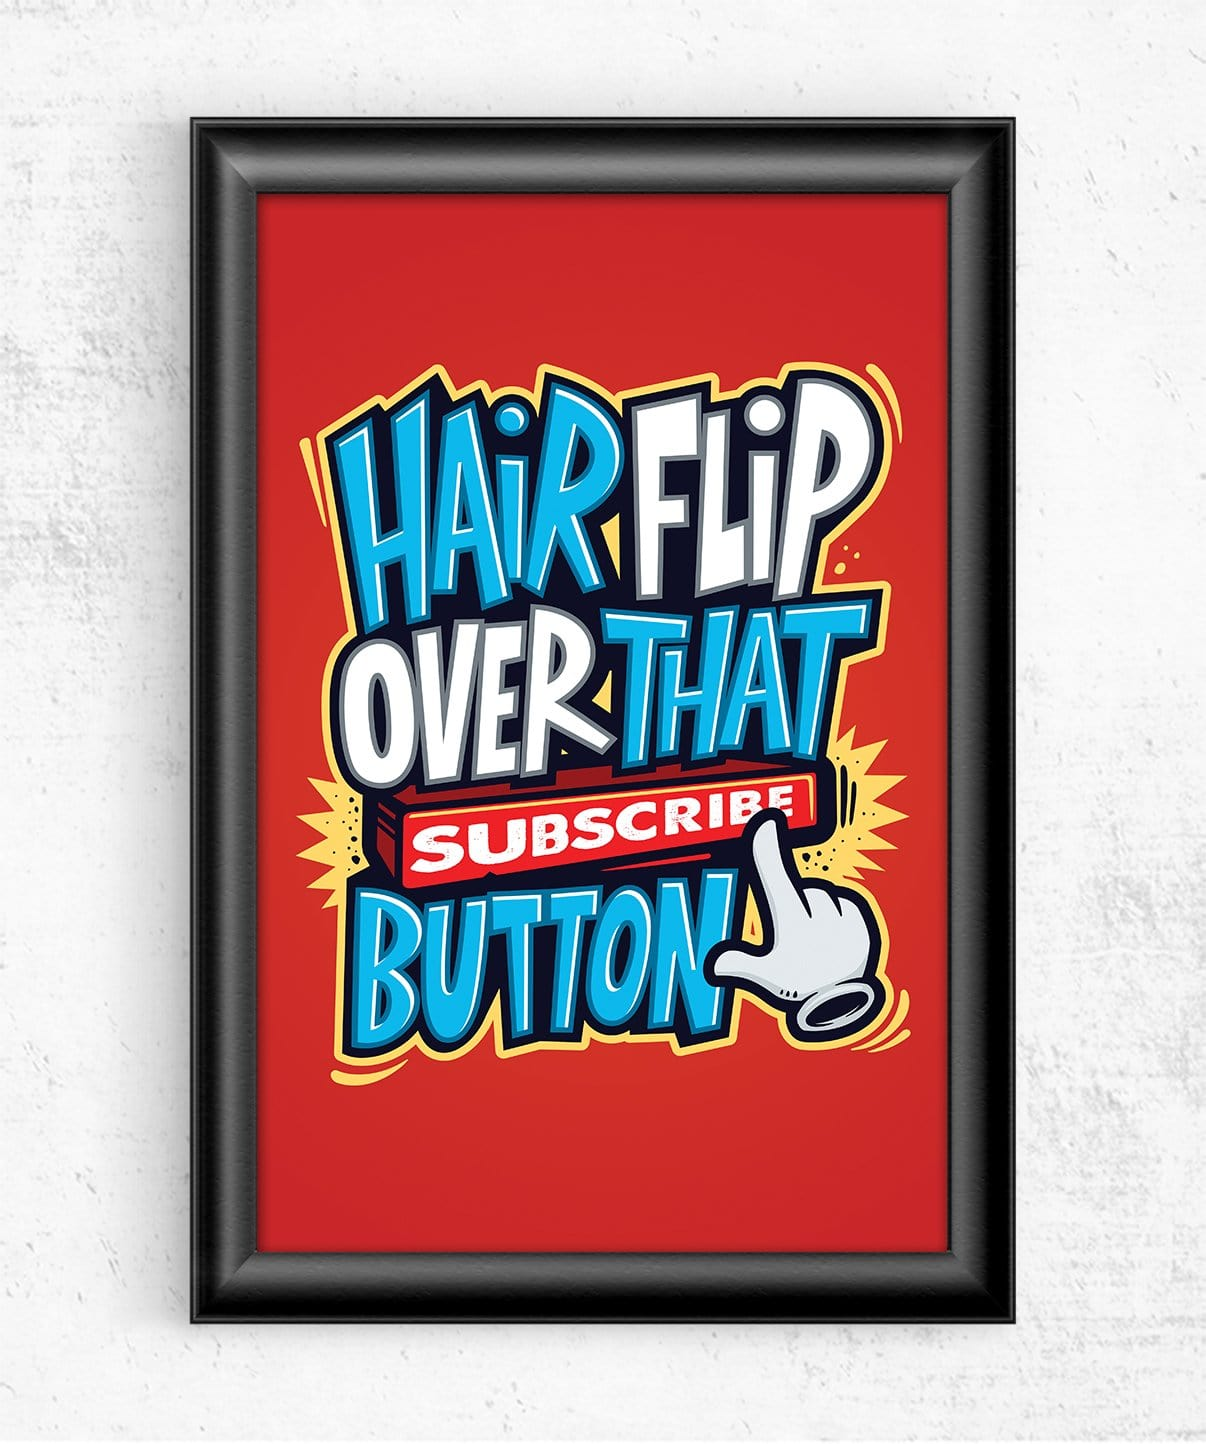 Hairflip Over That Subscribe Button Posters by Beatemups - Pixel Empire